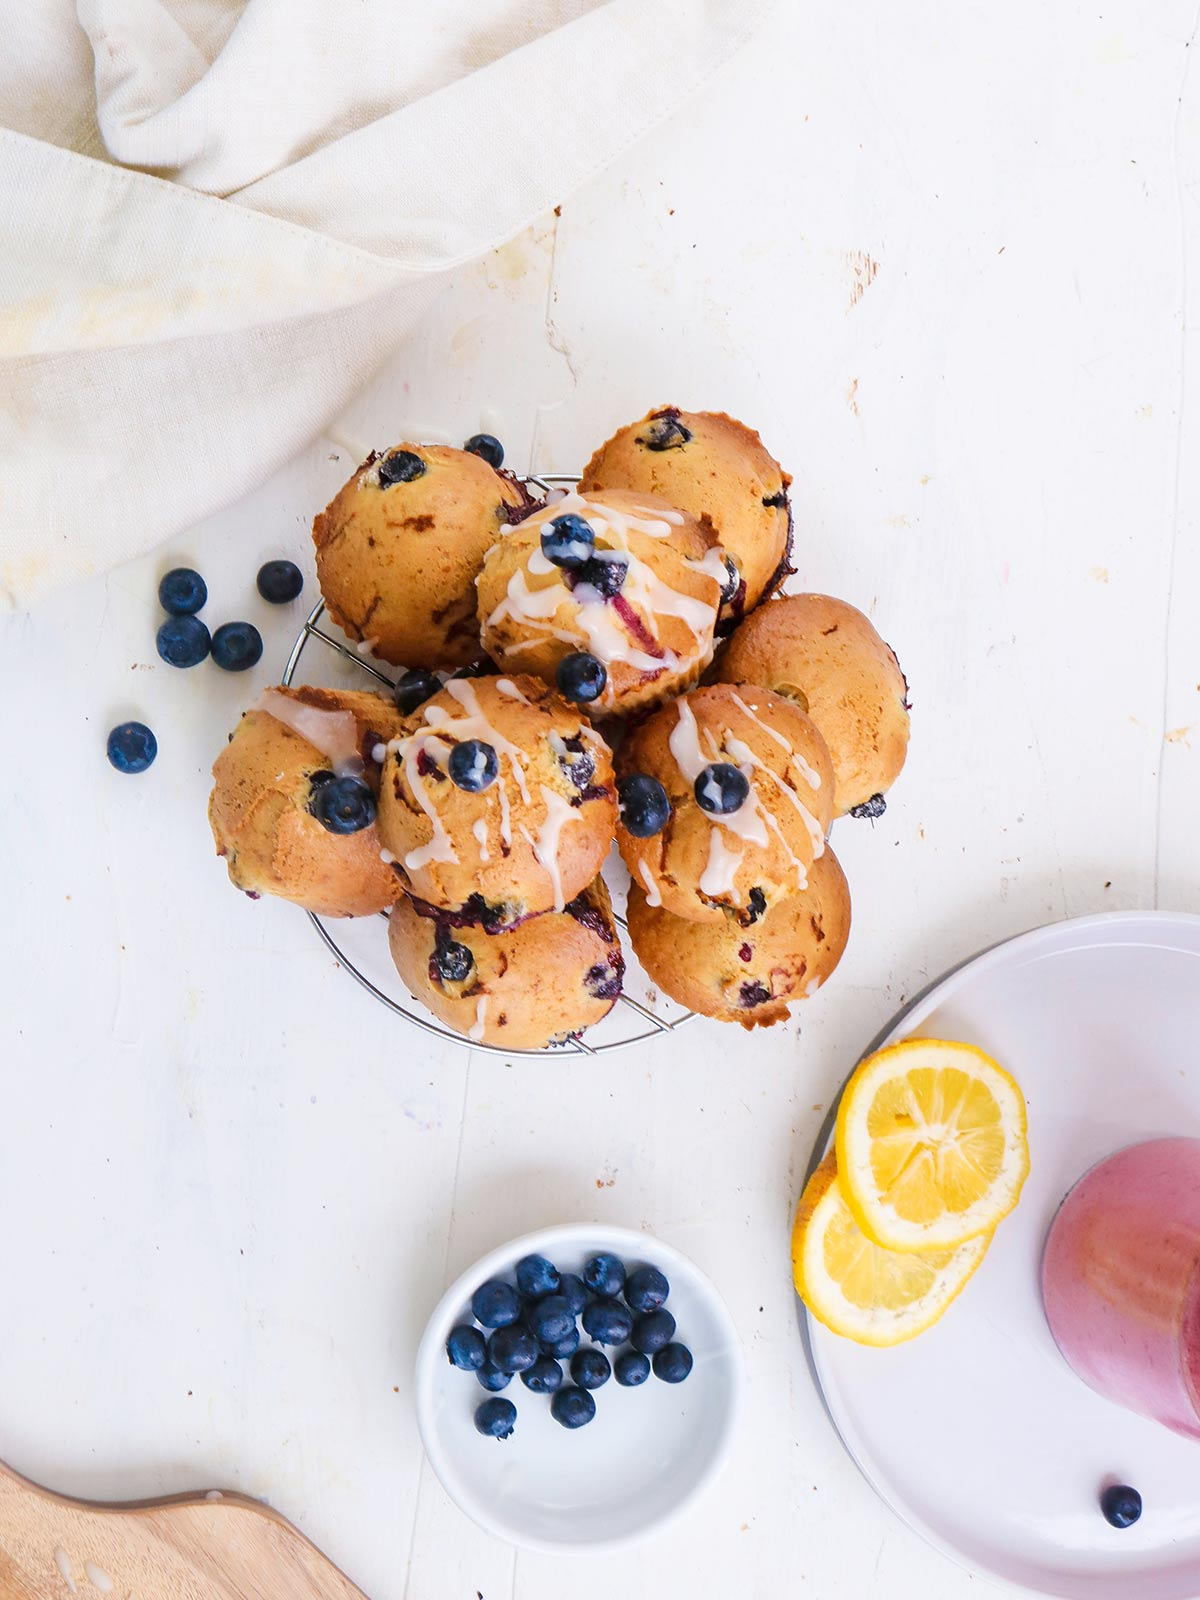 Vegan blueberry-lemon muffins with a sugar-lemon glaze. Stack on a wire carrier top view